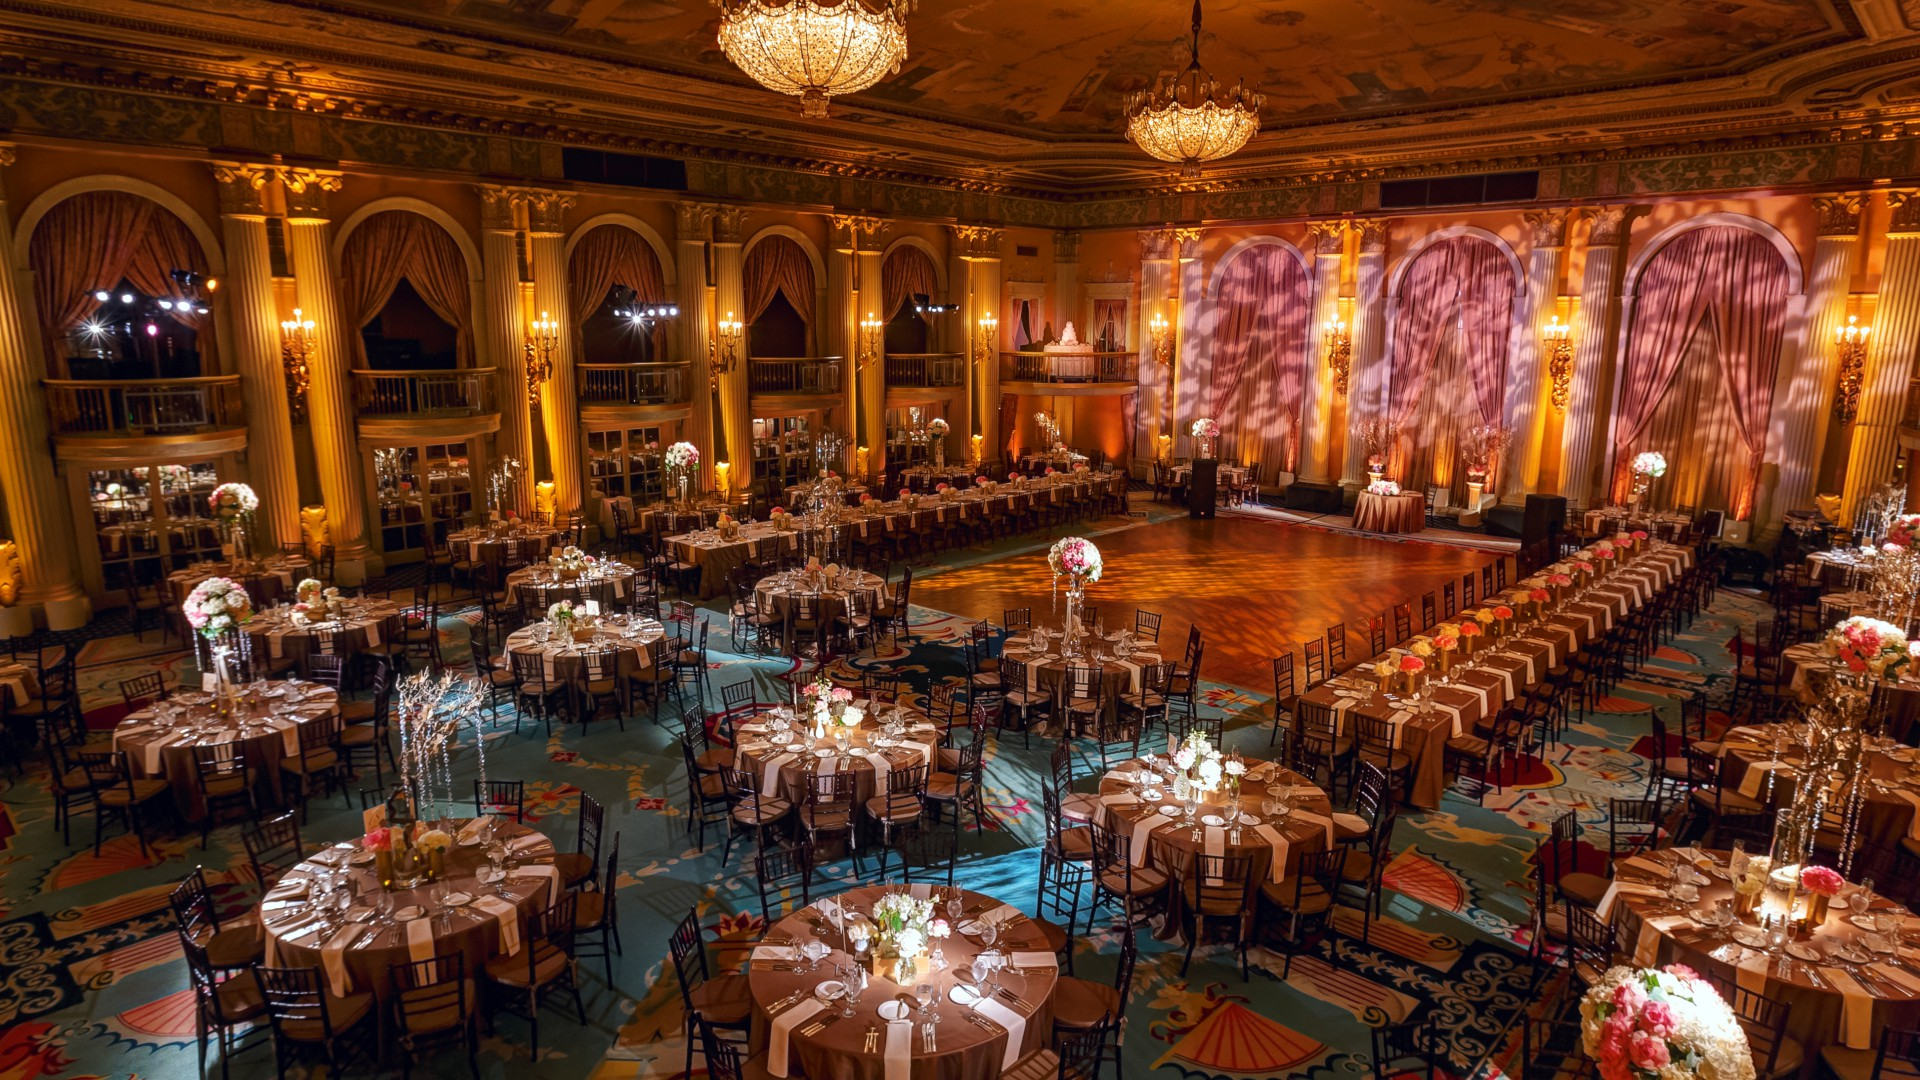 Millennium Biltmore Hotel, Los Angeles, Best Hotels of 2015, tourism, travel, resort, vacation, wedding, booking (horizontal)